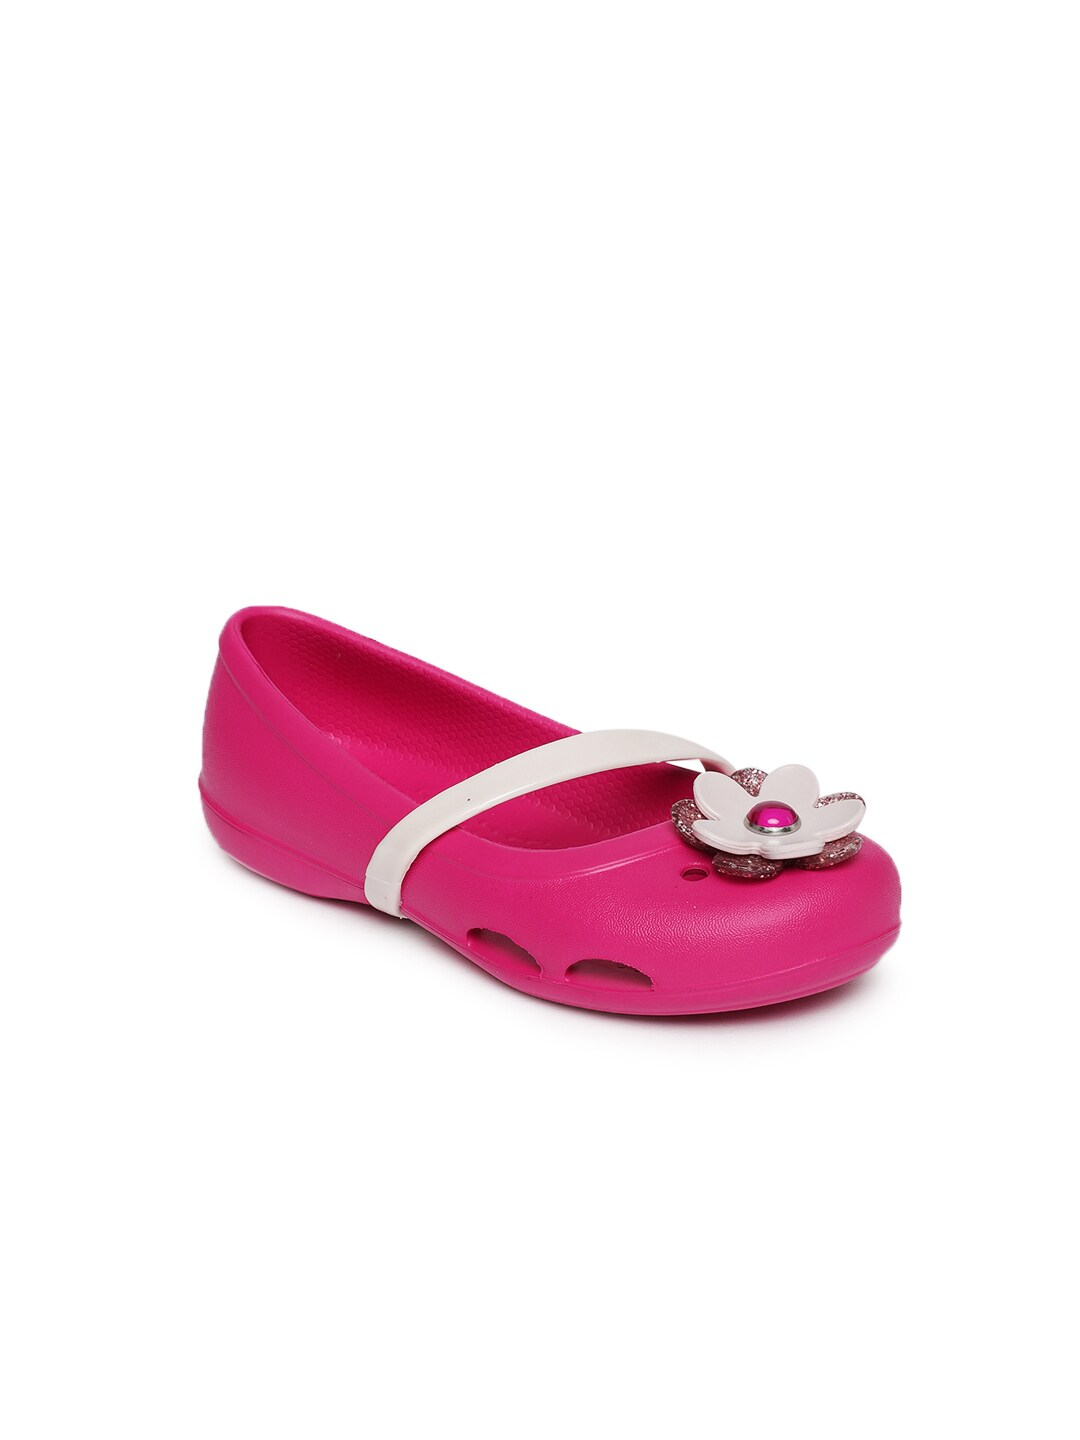 99dd1186d Crocs Ballerina Footwear - Buy Crocs Ballerina Footwear online in India